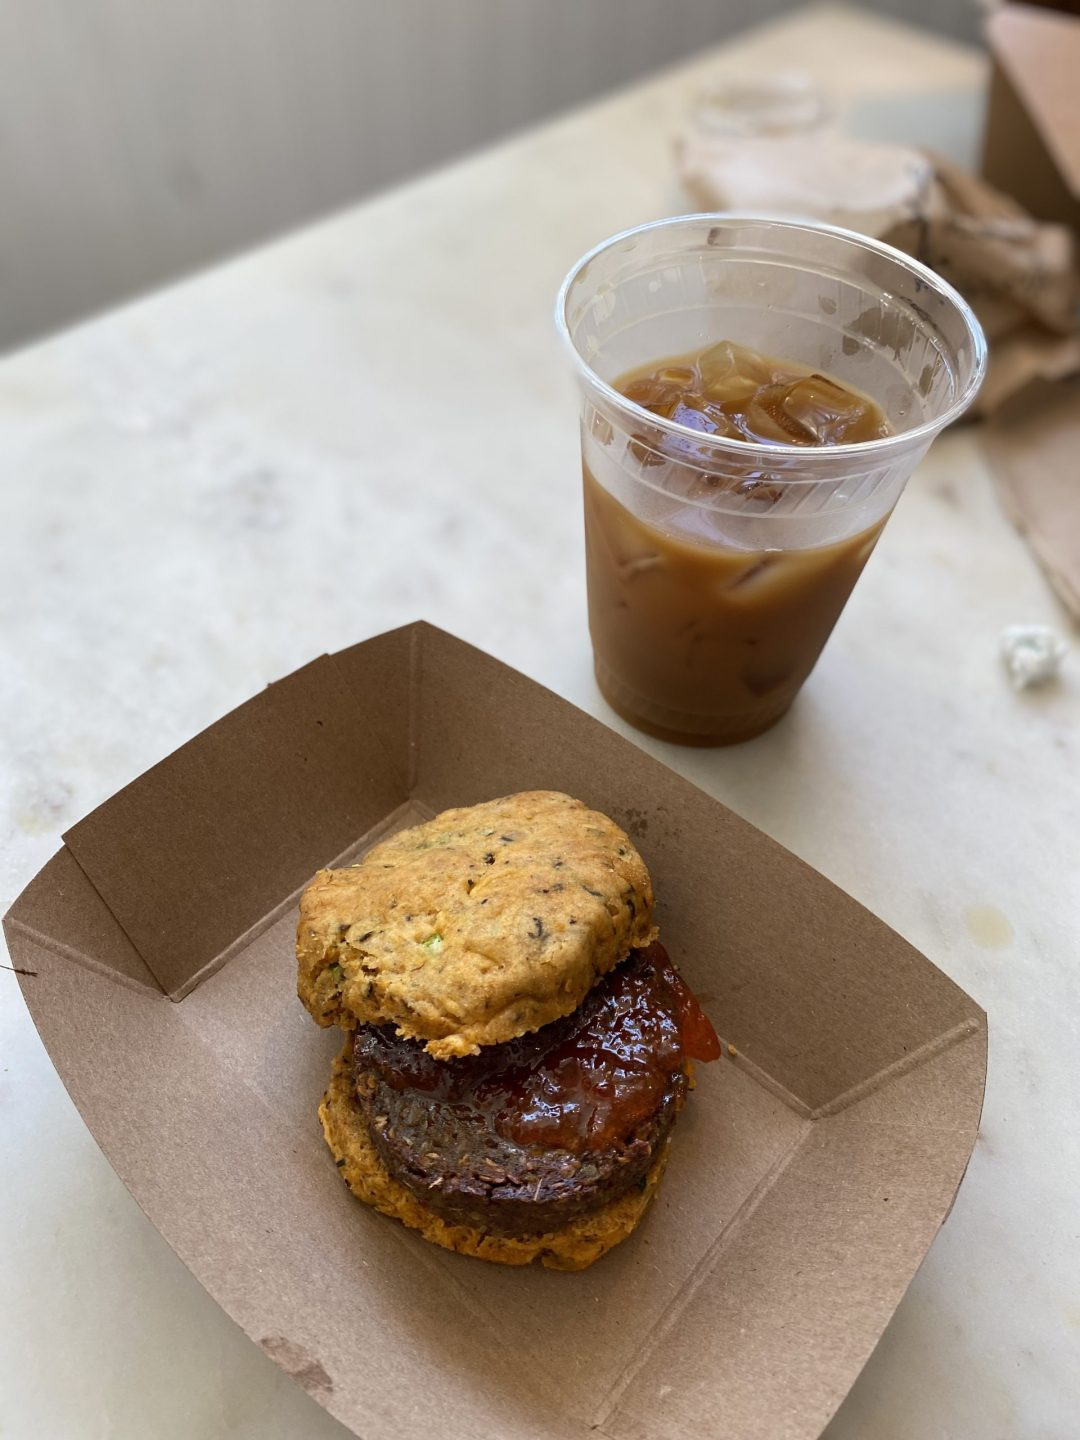 Biscuit with hemp sausage and pepper jelly; iced coffee in the background